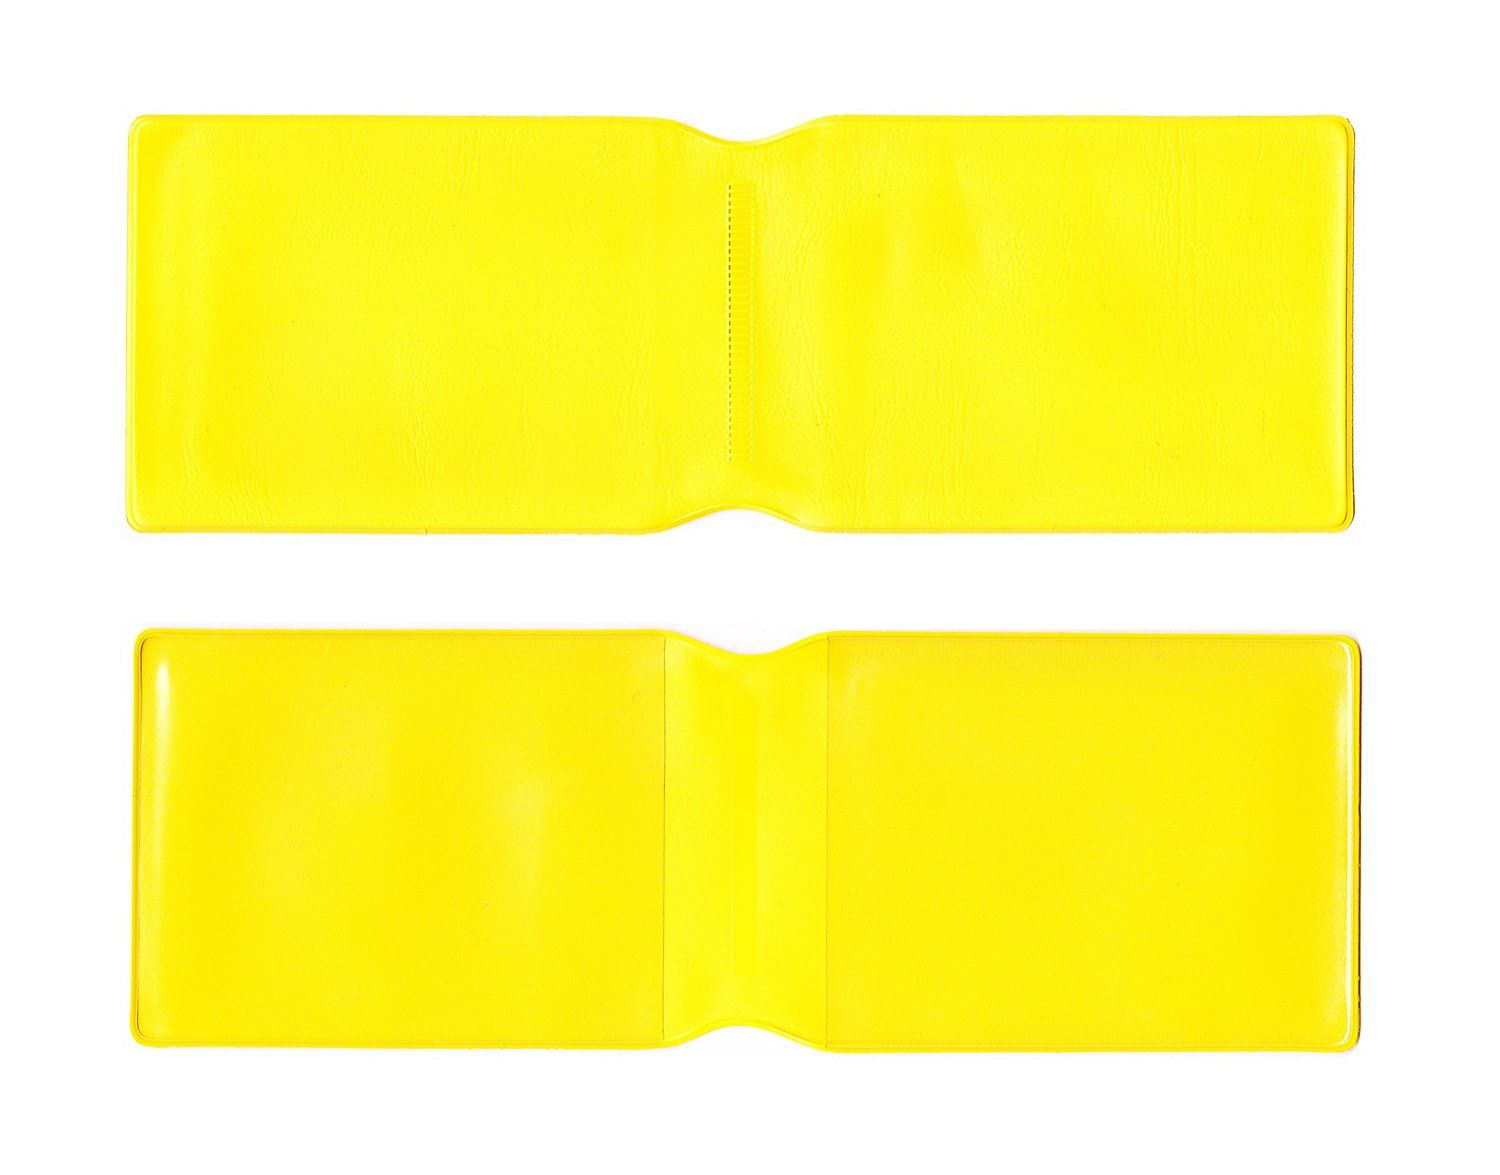 1 X Yellow Plastic Oyster Card Wallet Credit Card Holder Id Card Wallet Business Card Holder Travel Pass Oyster Card Card Wallet Business Card Holders